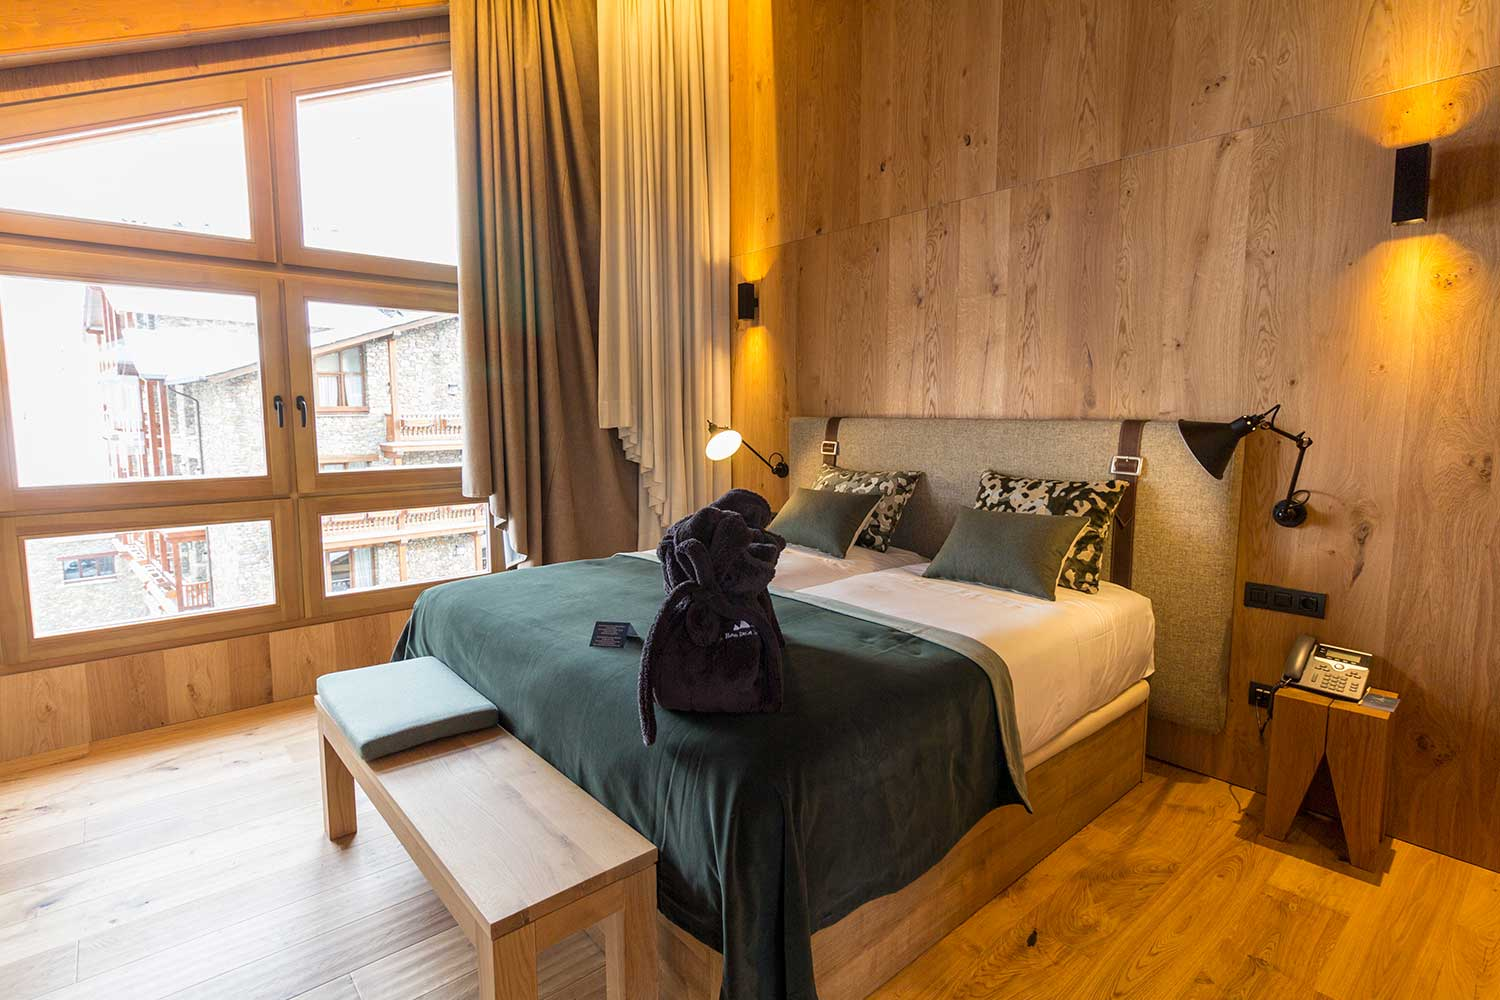 Hermitage Mountain Residences | Luxury Accommodation in Soldeu The Leading Hotels of the World